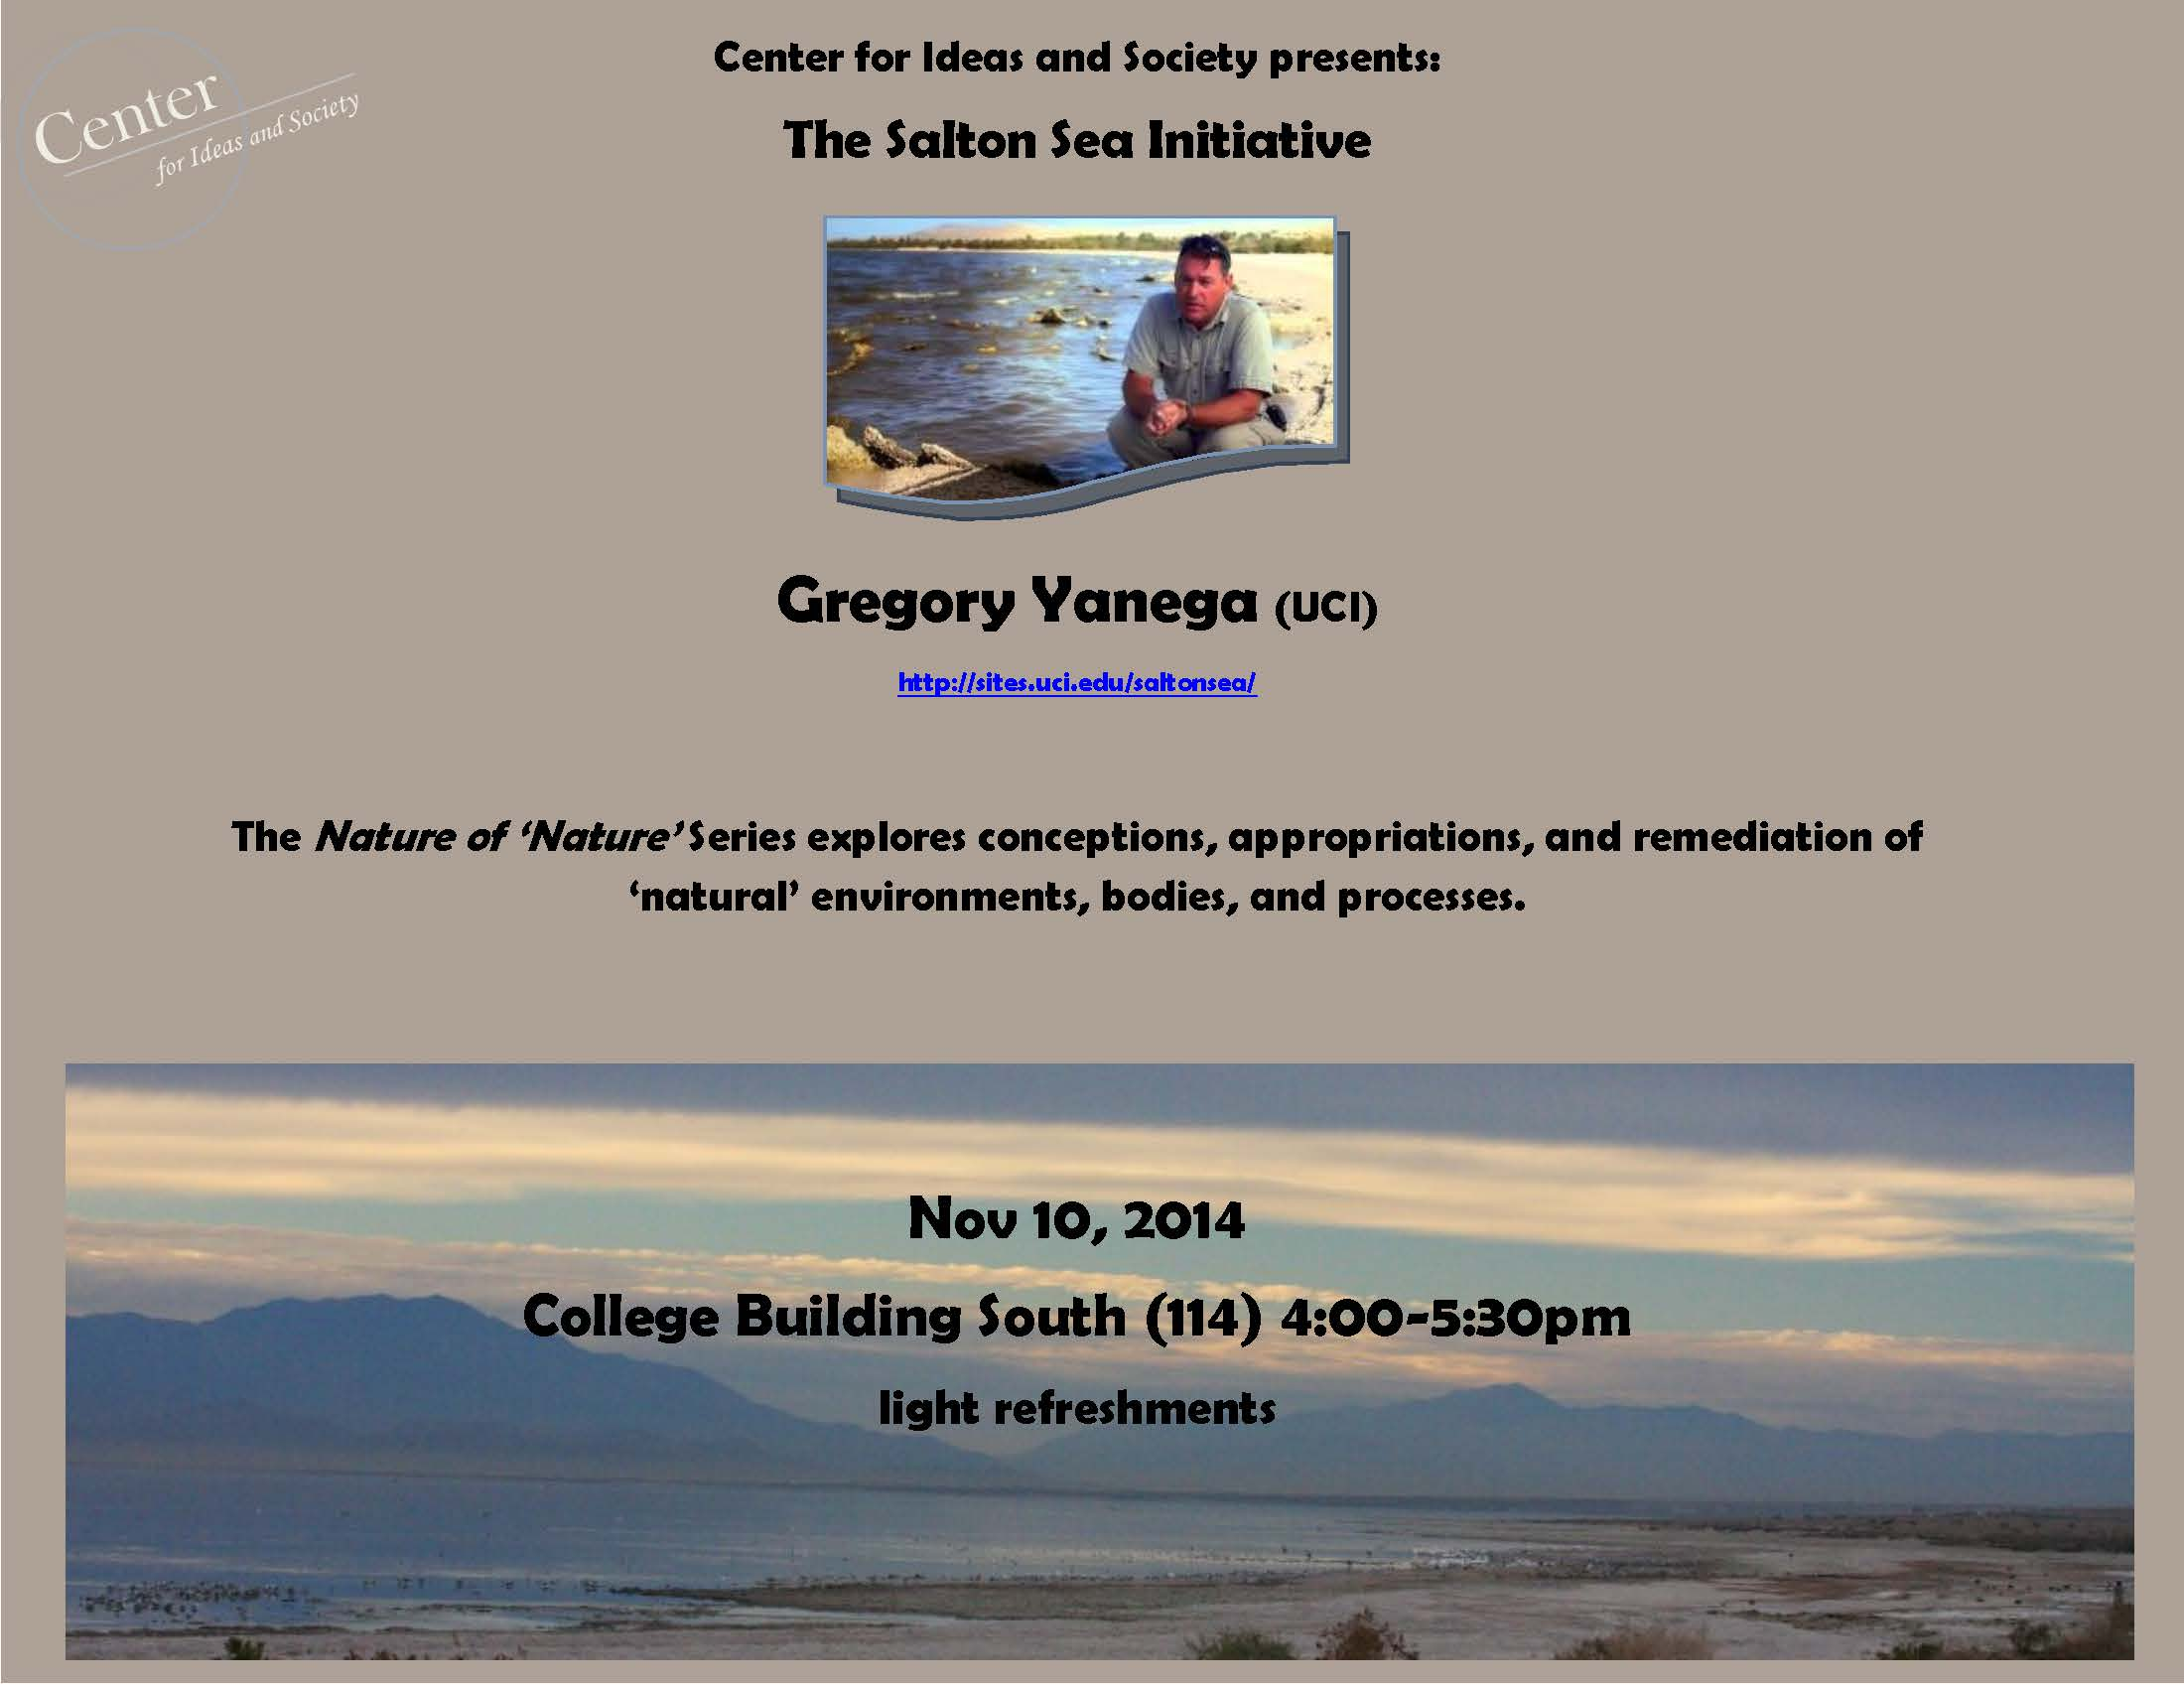 Gregory Yanega Salton Sea 11-10 Flyer